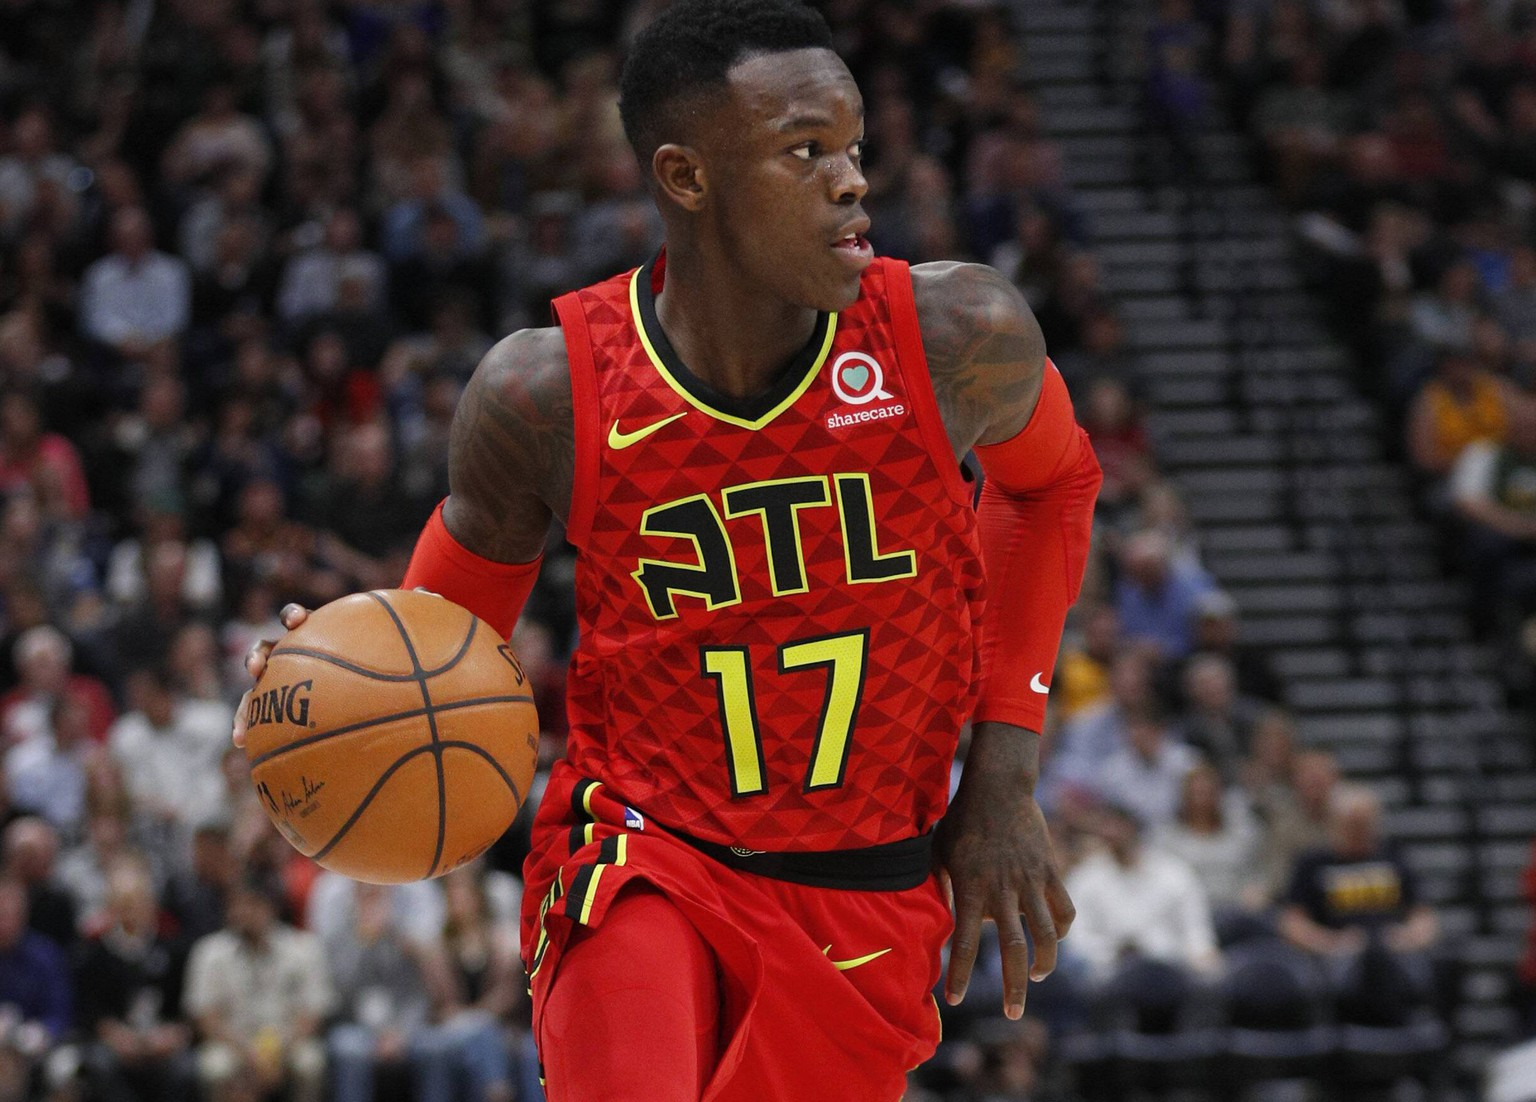 Atlanta Hawks guard Dennis Schroder brings the ball down court during a basketball game of the NBA Basketball Herren USA against Utah Jazz at Energy Solutions Arena in Salt Lake City, Utah, US, 20 March 2018. Atlanta Hawks at Utah Jazz !ACHTUNG: NUR REDAKTIONELLE NUTZUNG! PUBLICATIONxINxGERxSUIxAUTxONLY Copyright: xGEORGExFREYx GFX20 20180321-636572055662900563